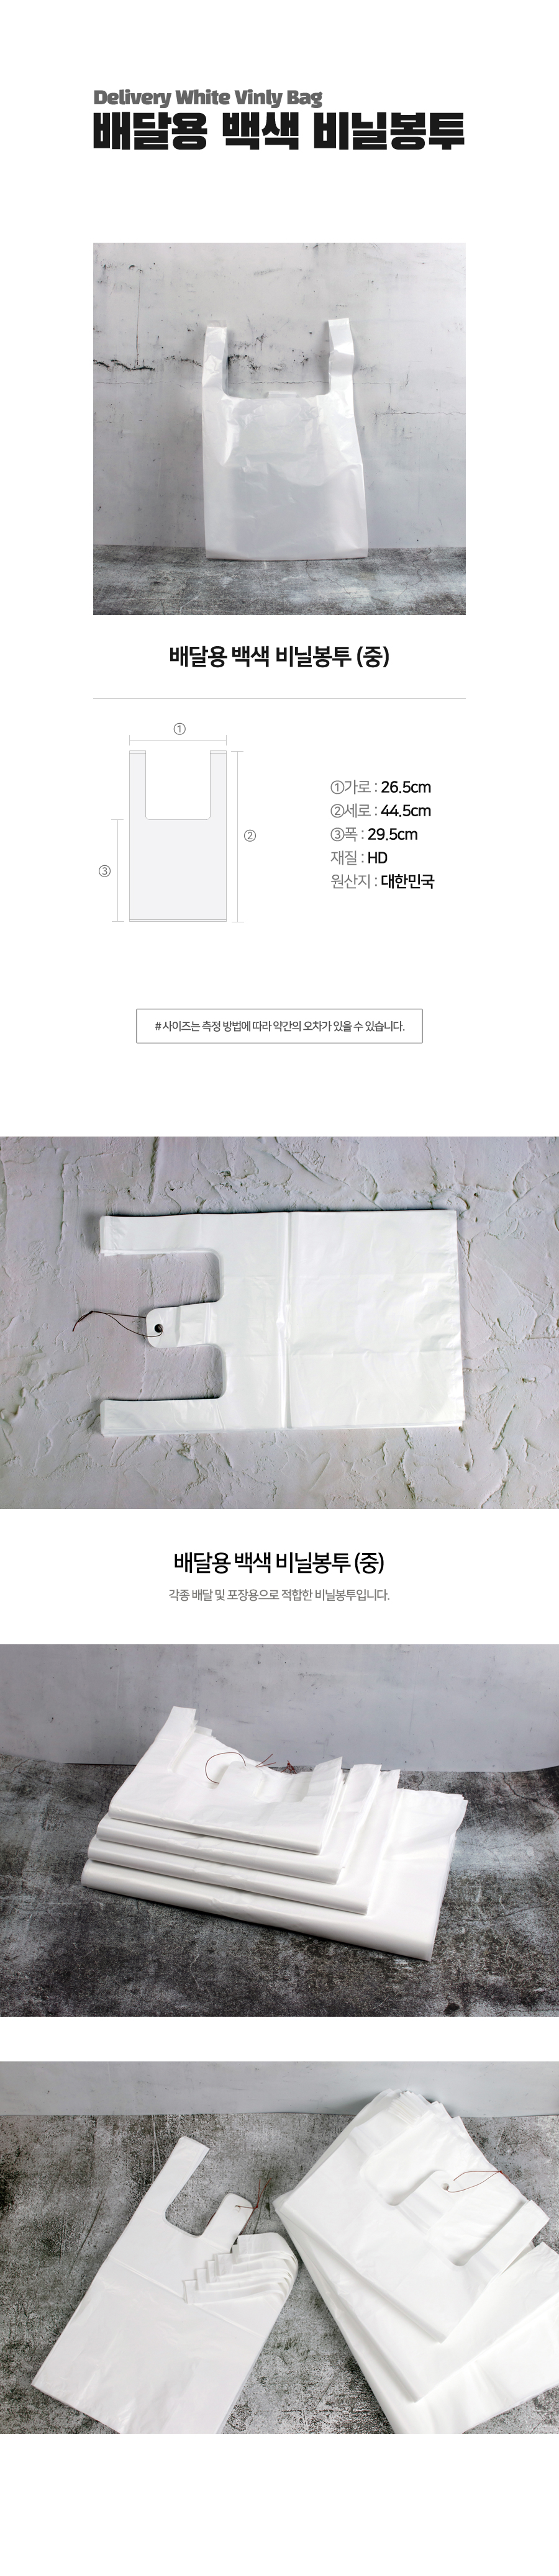 Delivery_White_Vinly_Bag_M